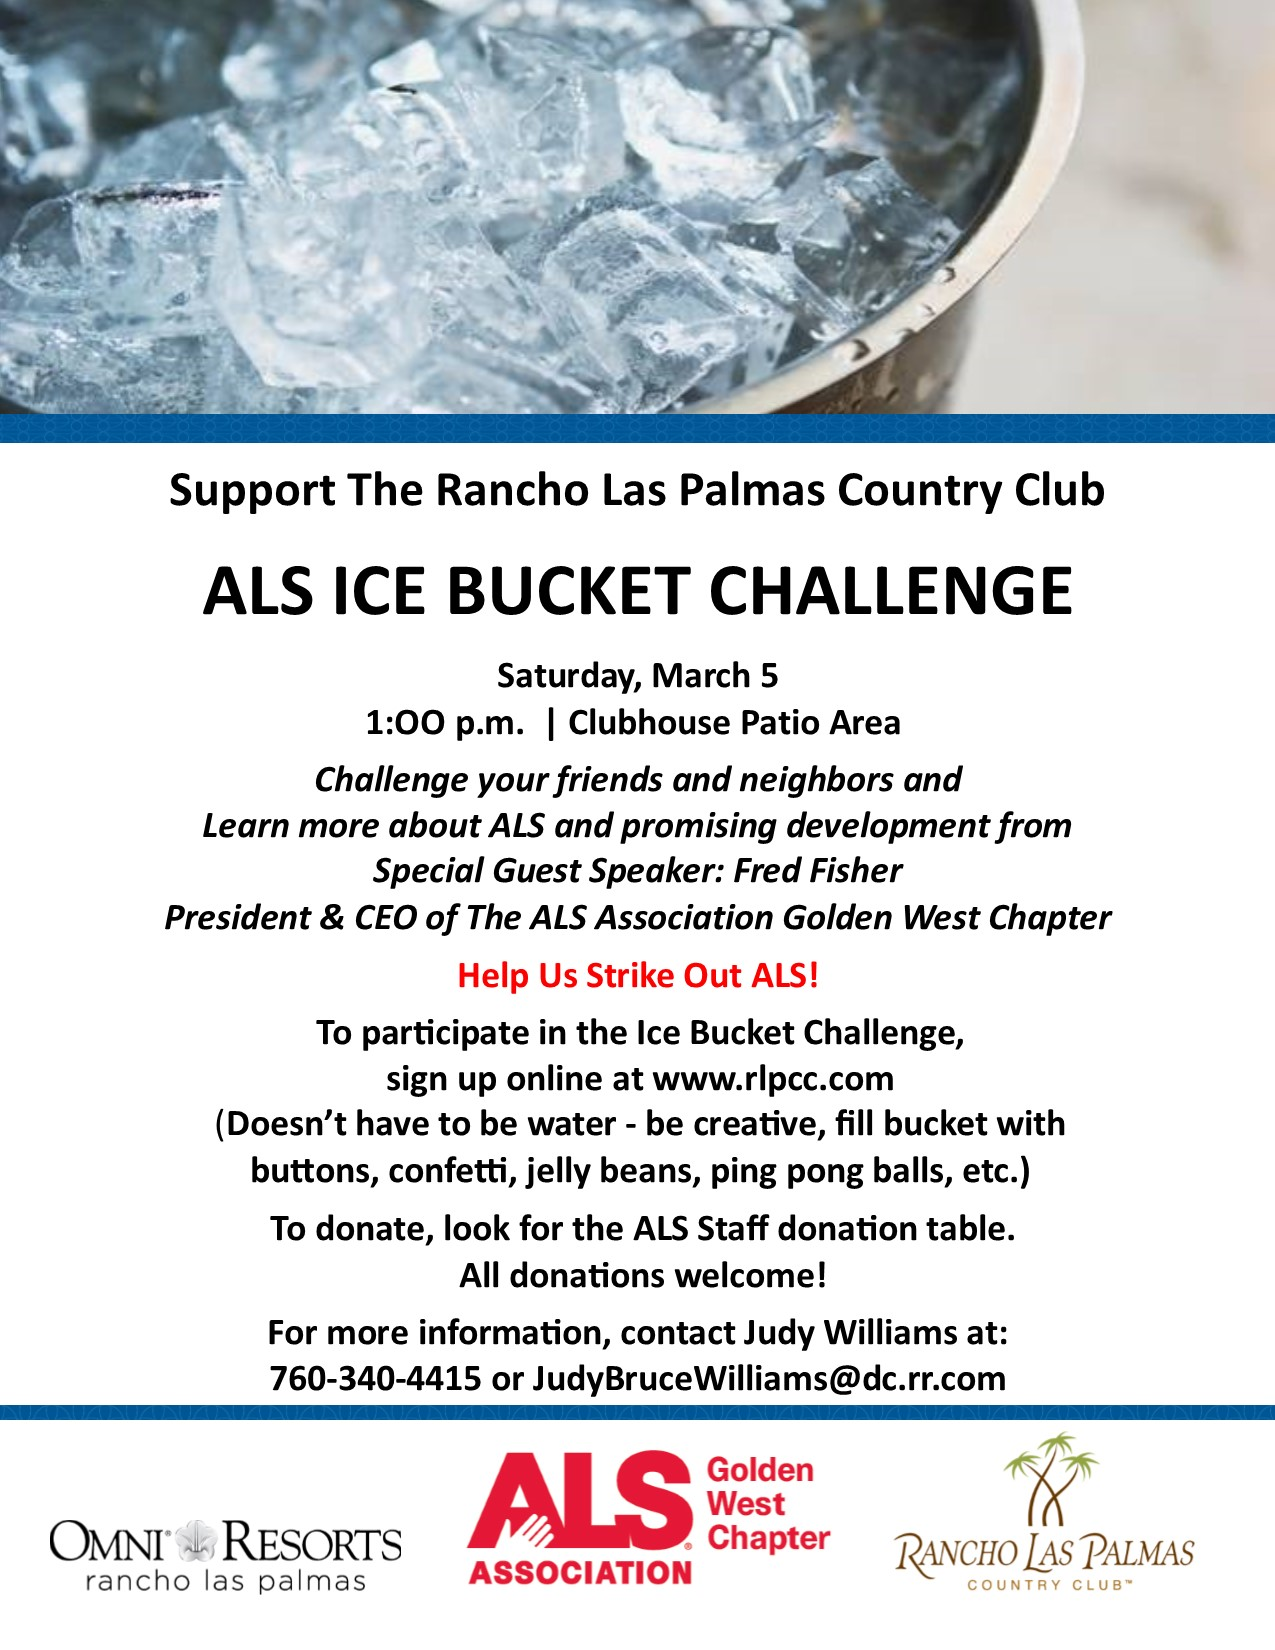 ALS Ice Bucket Challenge - March 5, 2016